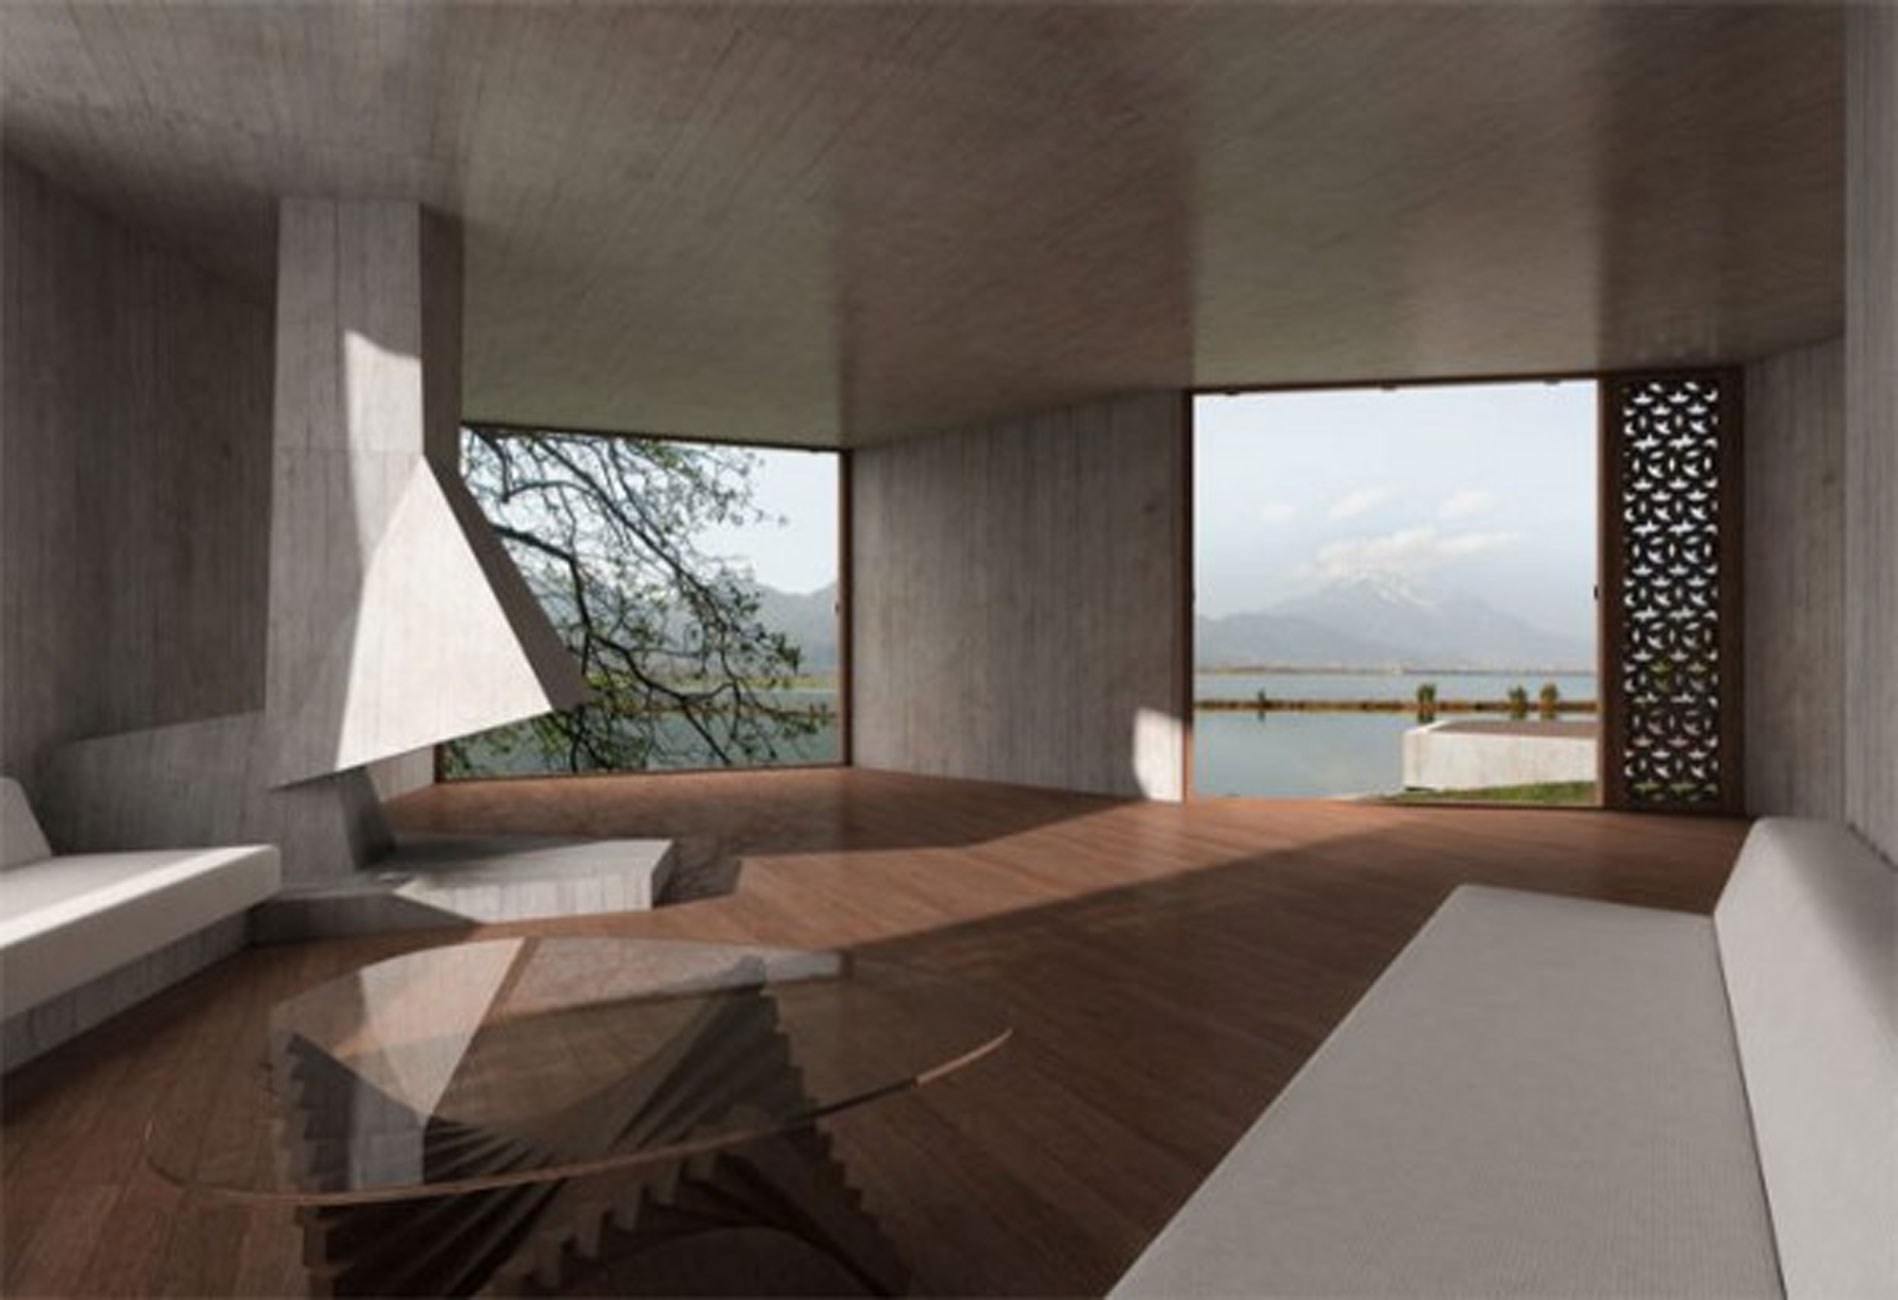 Treehouse geometric guest house design in china for Guest house interior design photos